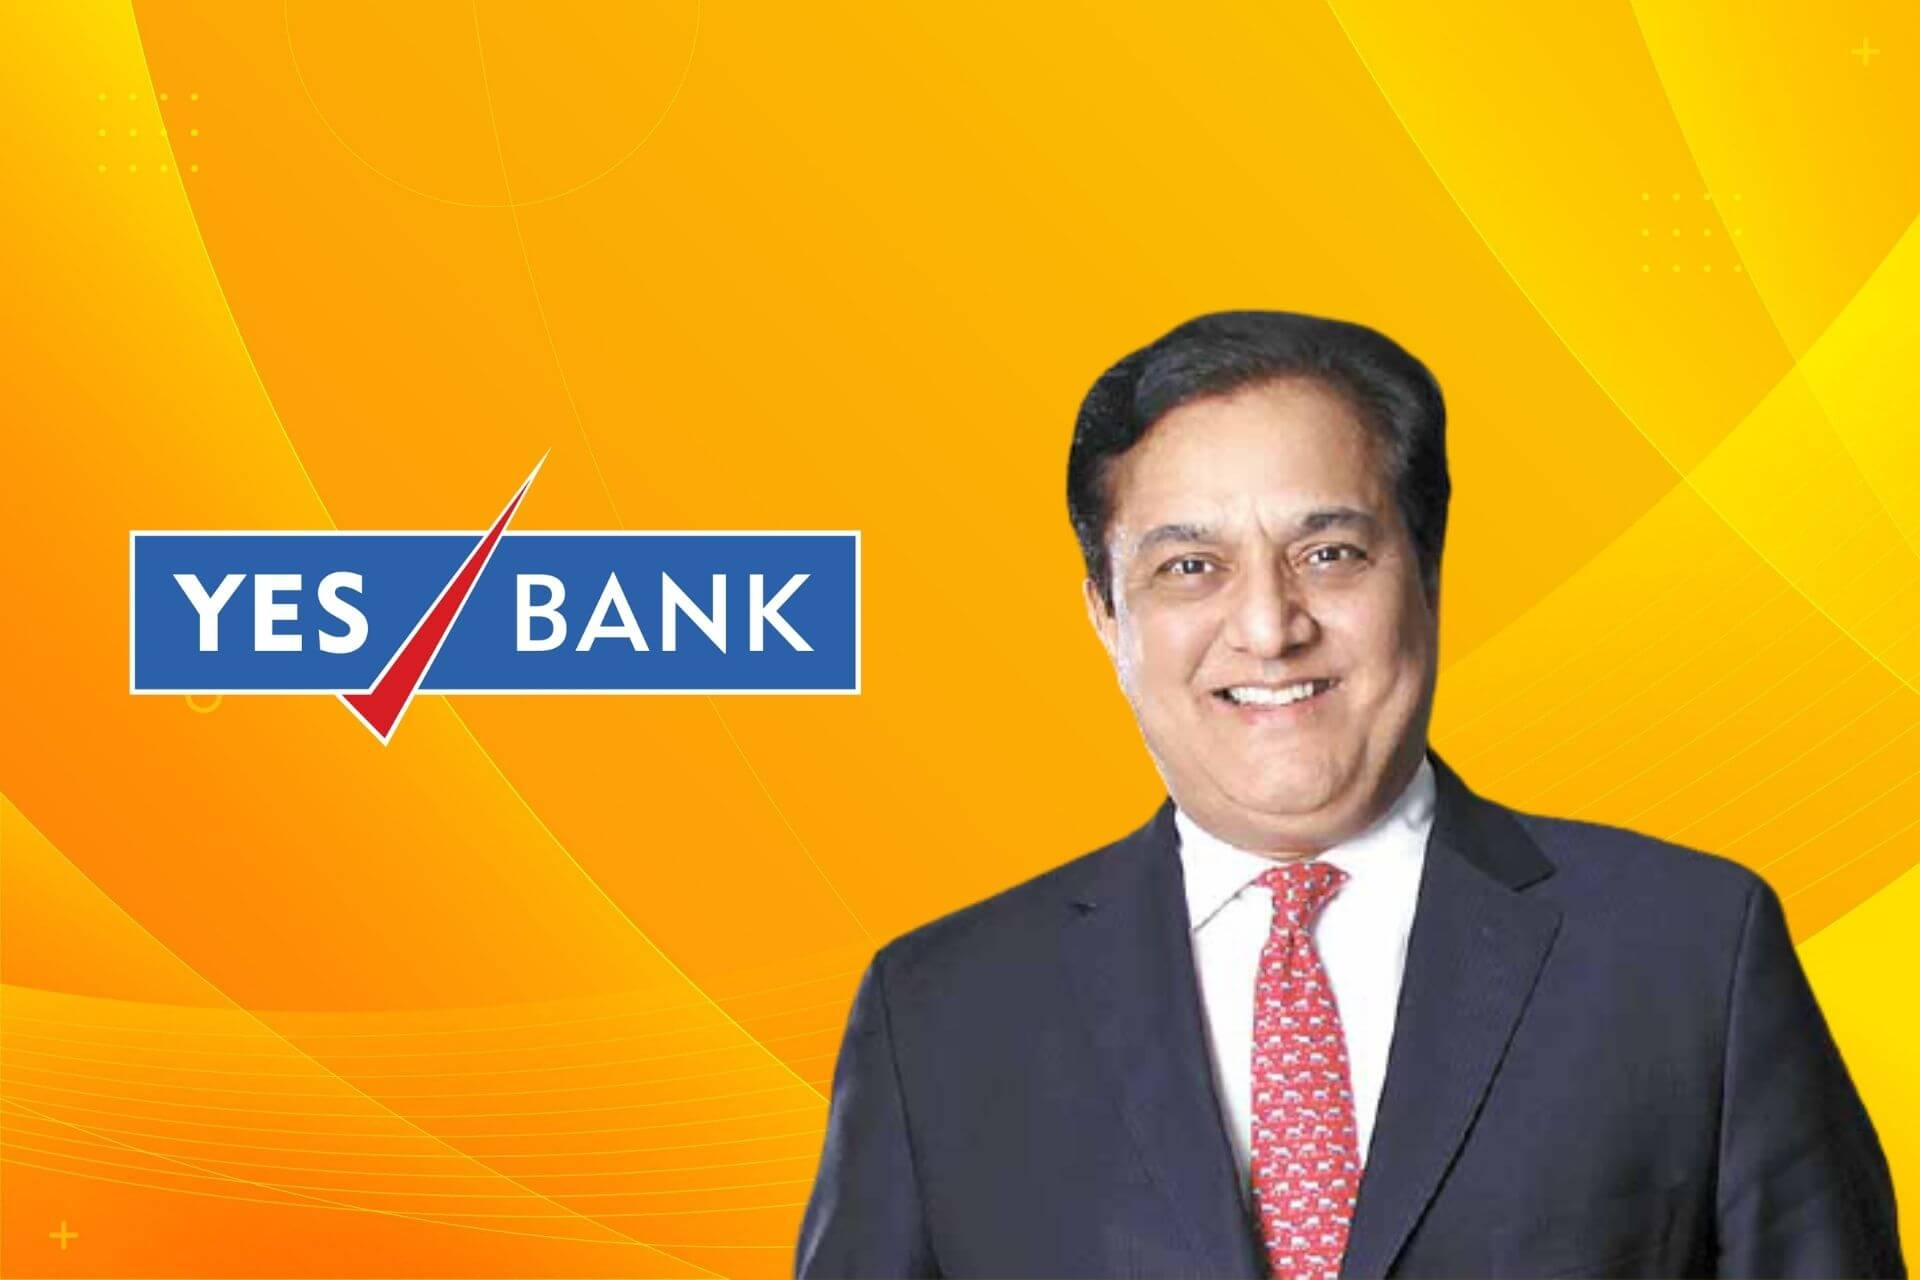 Rana Kapoor's Story: The Man behind the Rise and Fall of Yes Bank!